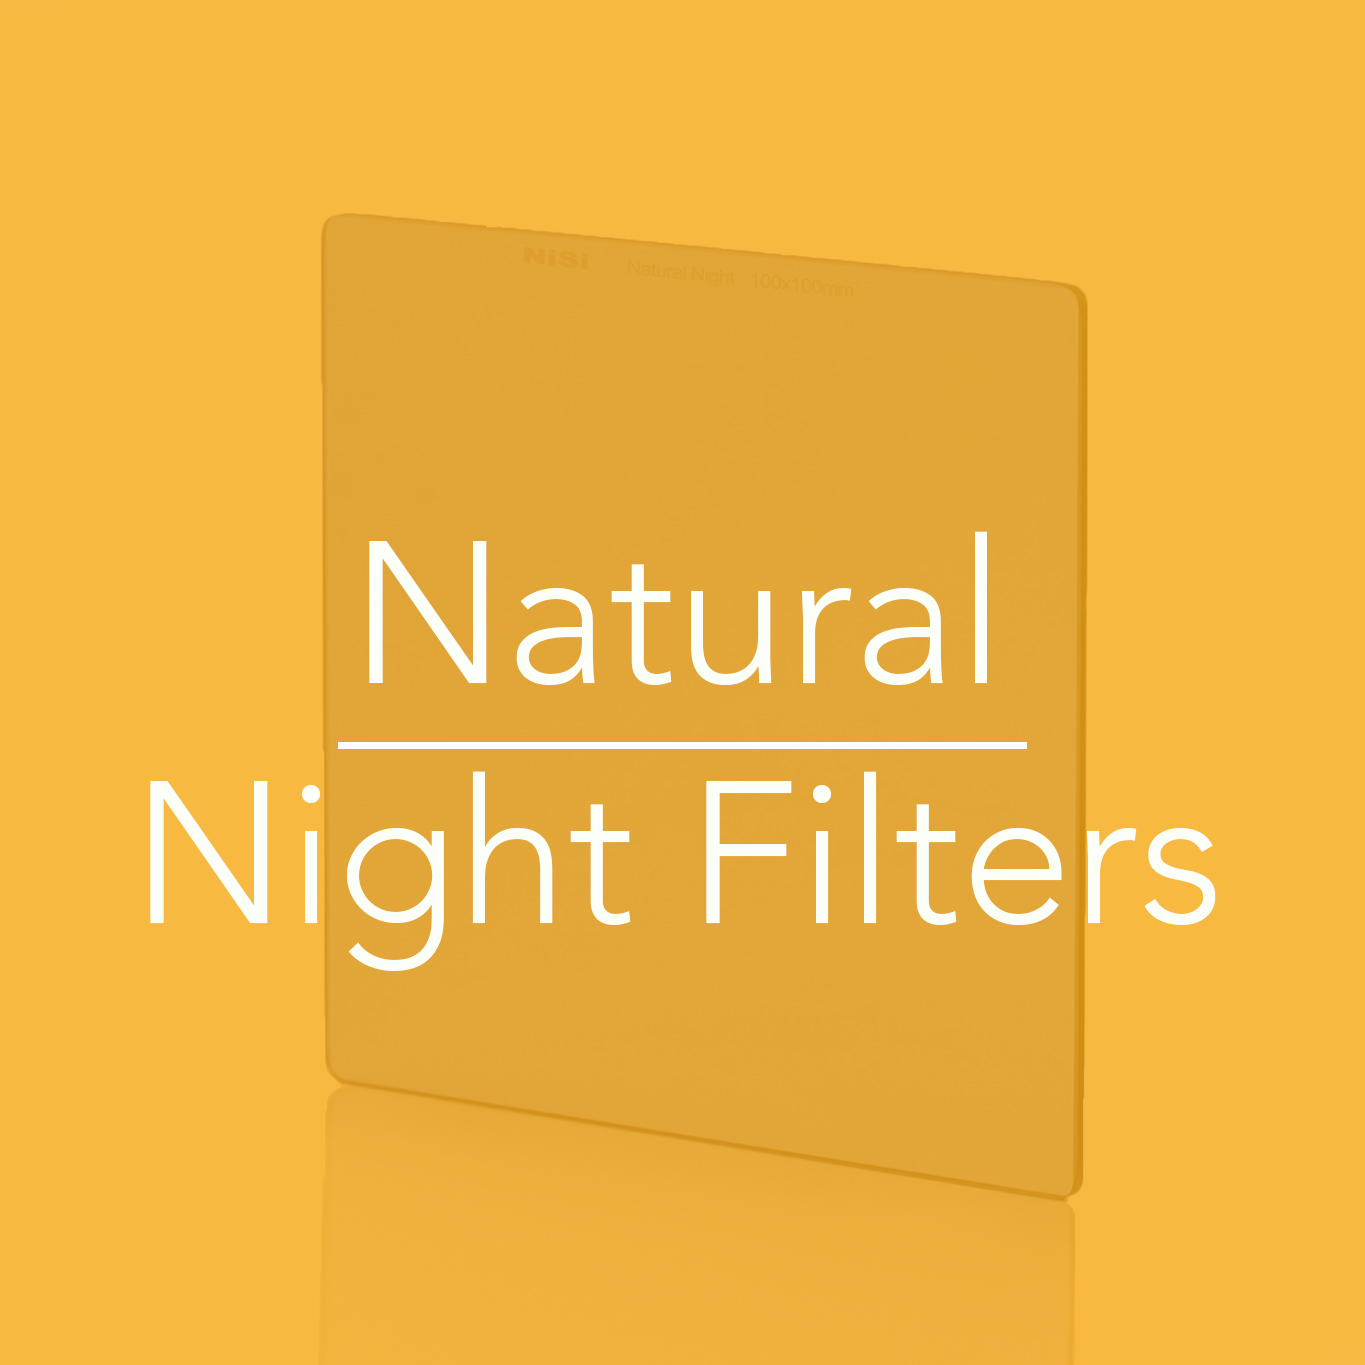 NiSi Filters Australia - Natural Night Filters